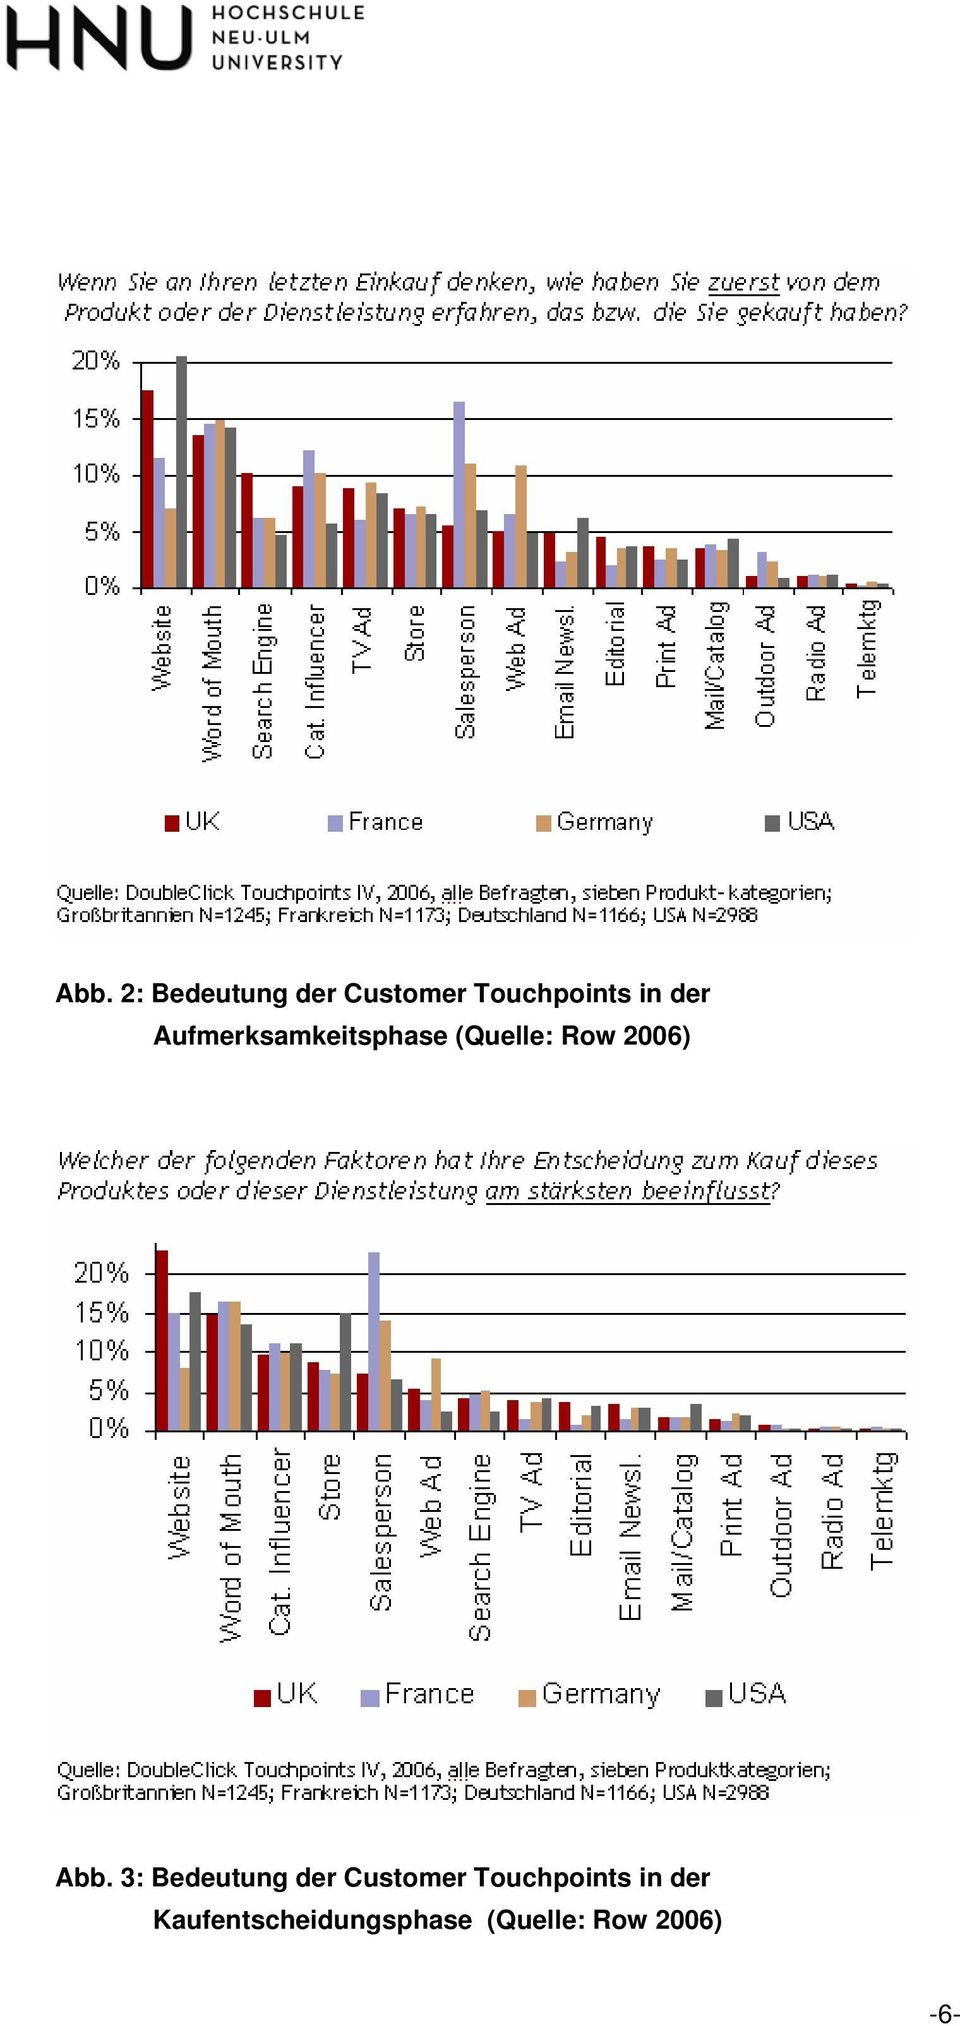 Abb. 3: Bedeutung der Customer Touchpoints in